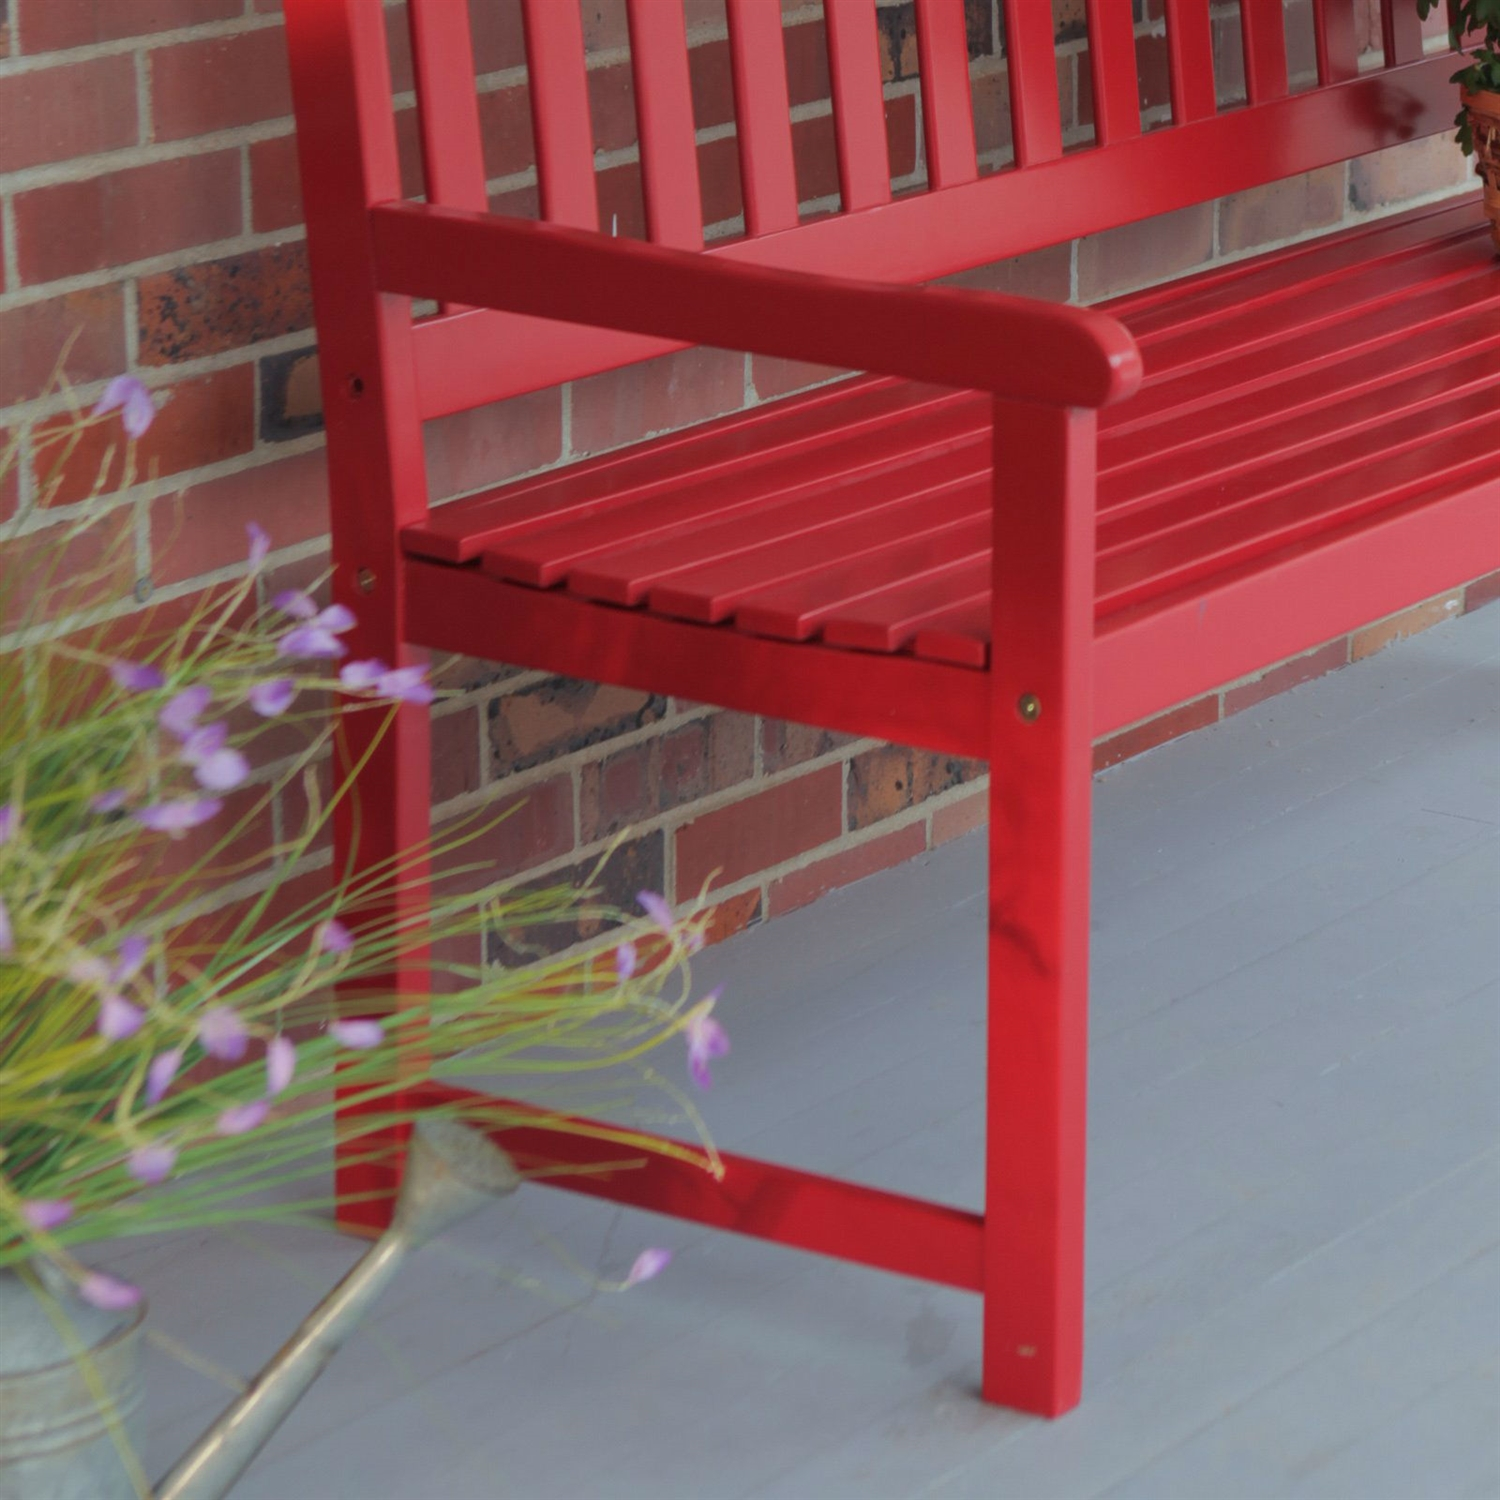 5 ft outdoor garden bench in red wood finish with armrest fastfurnishings com